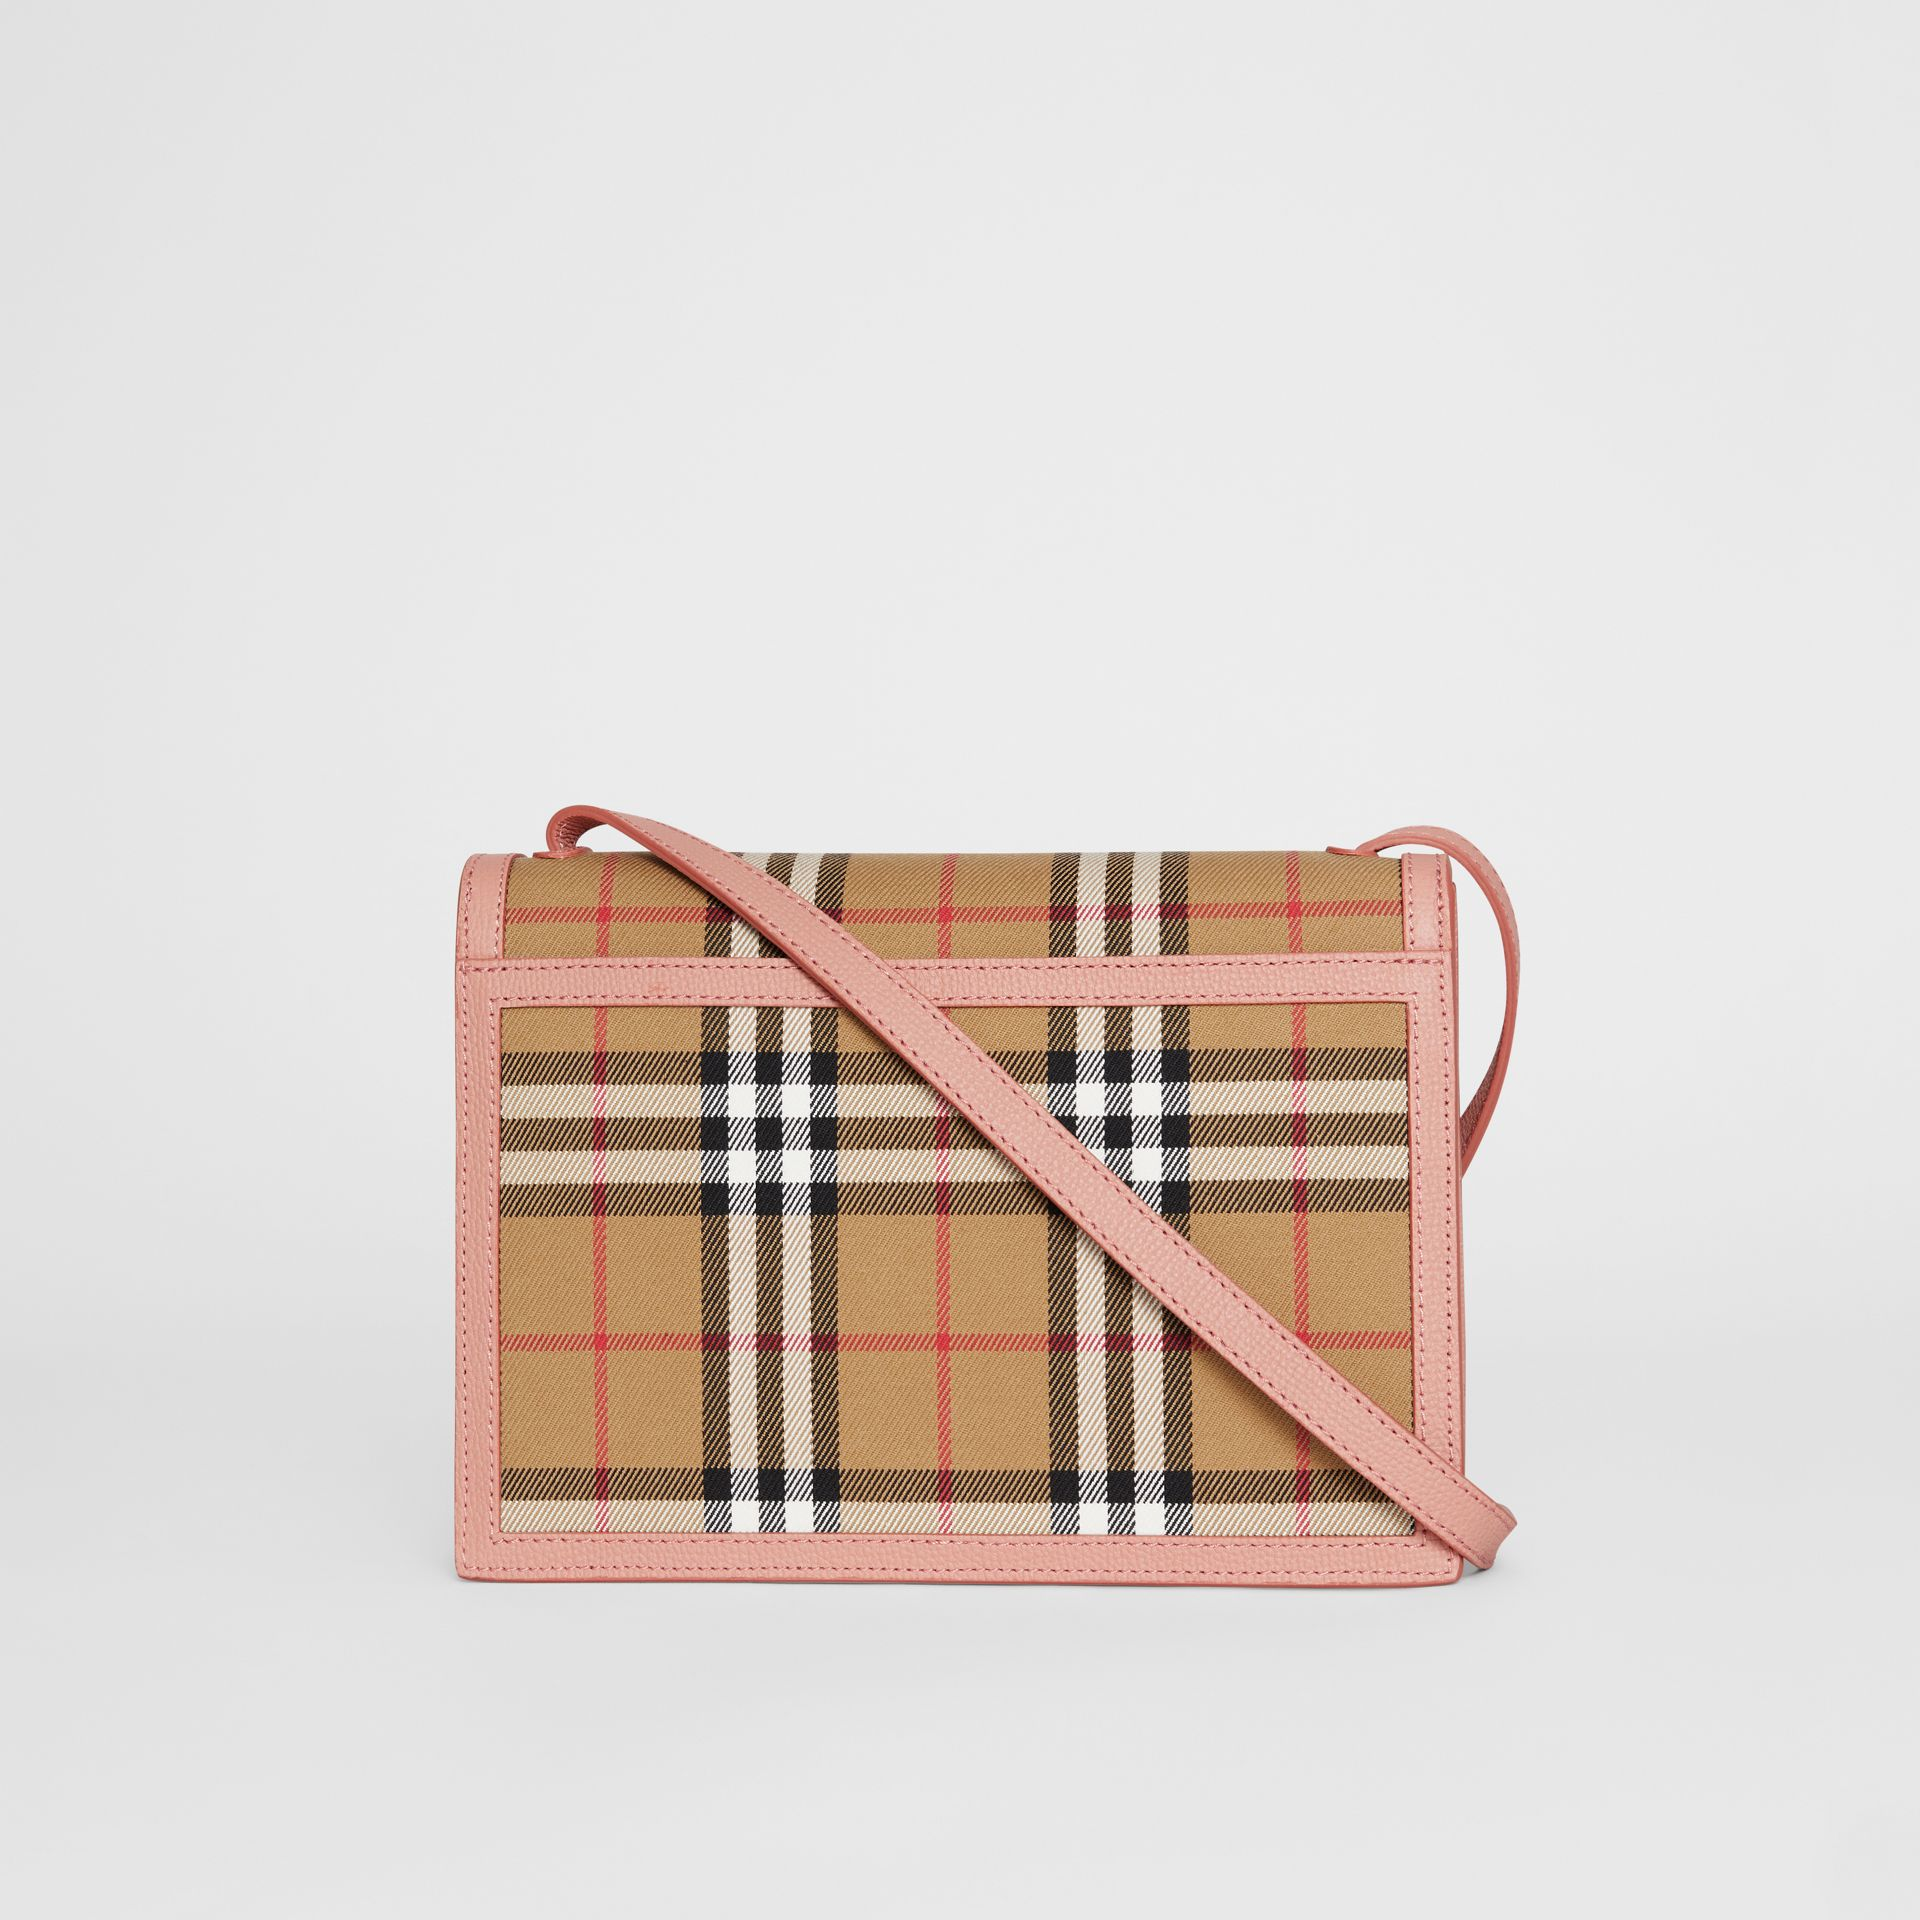 Small Vintage Check and Leather Crossbody Bag in Ash Rose - Women | Burberry United Kingdom - gallery image 7